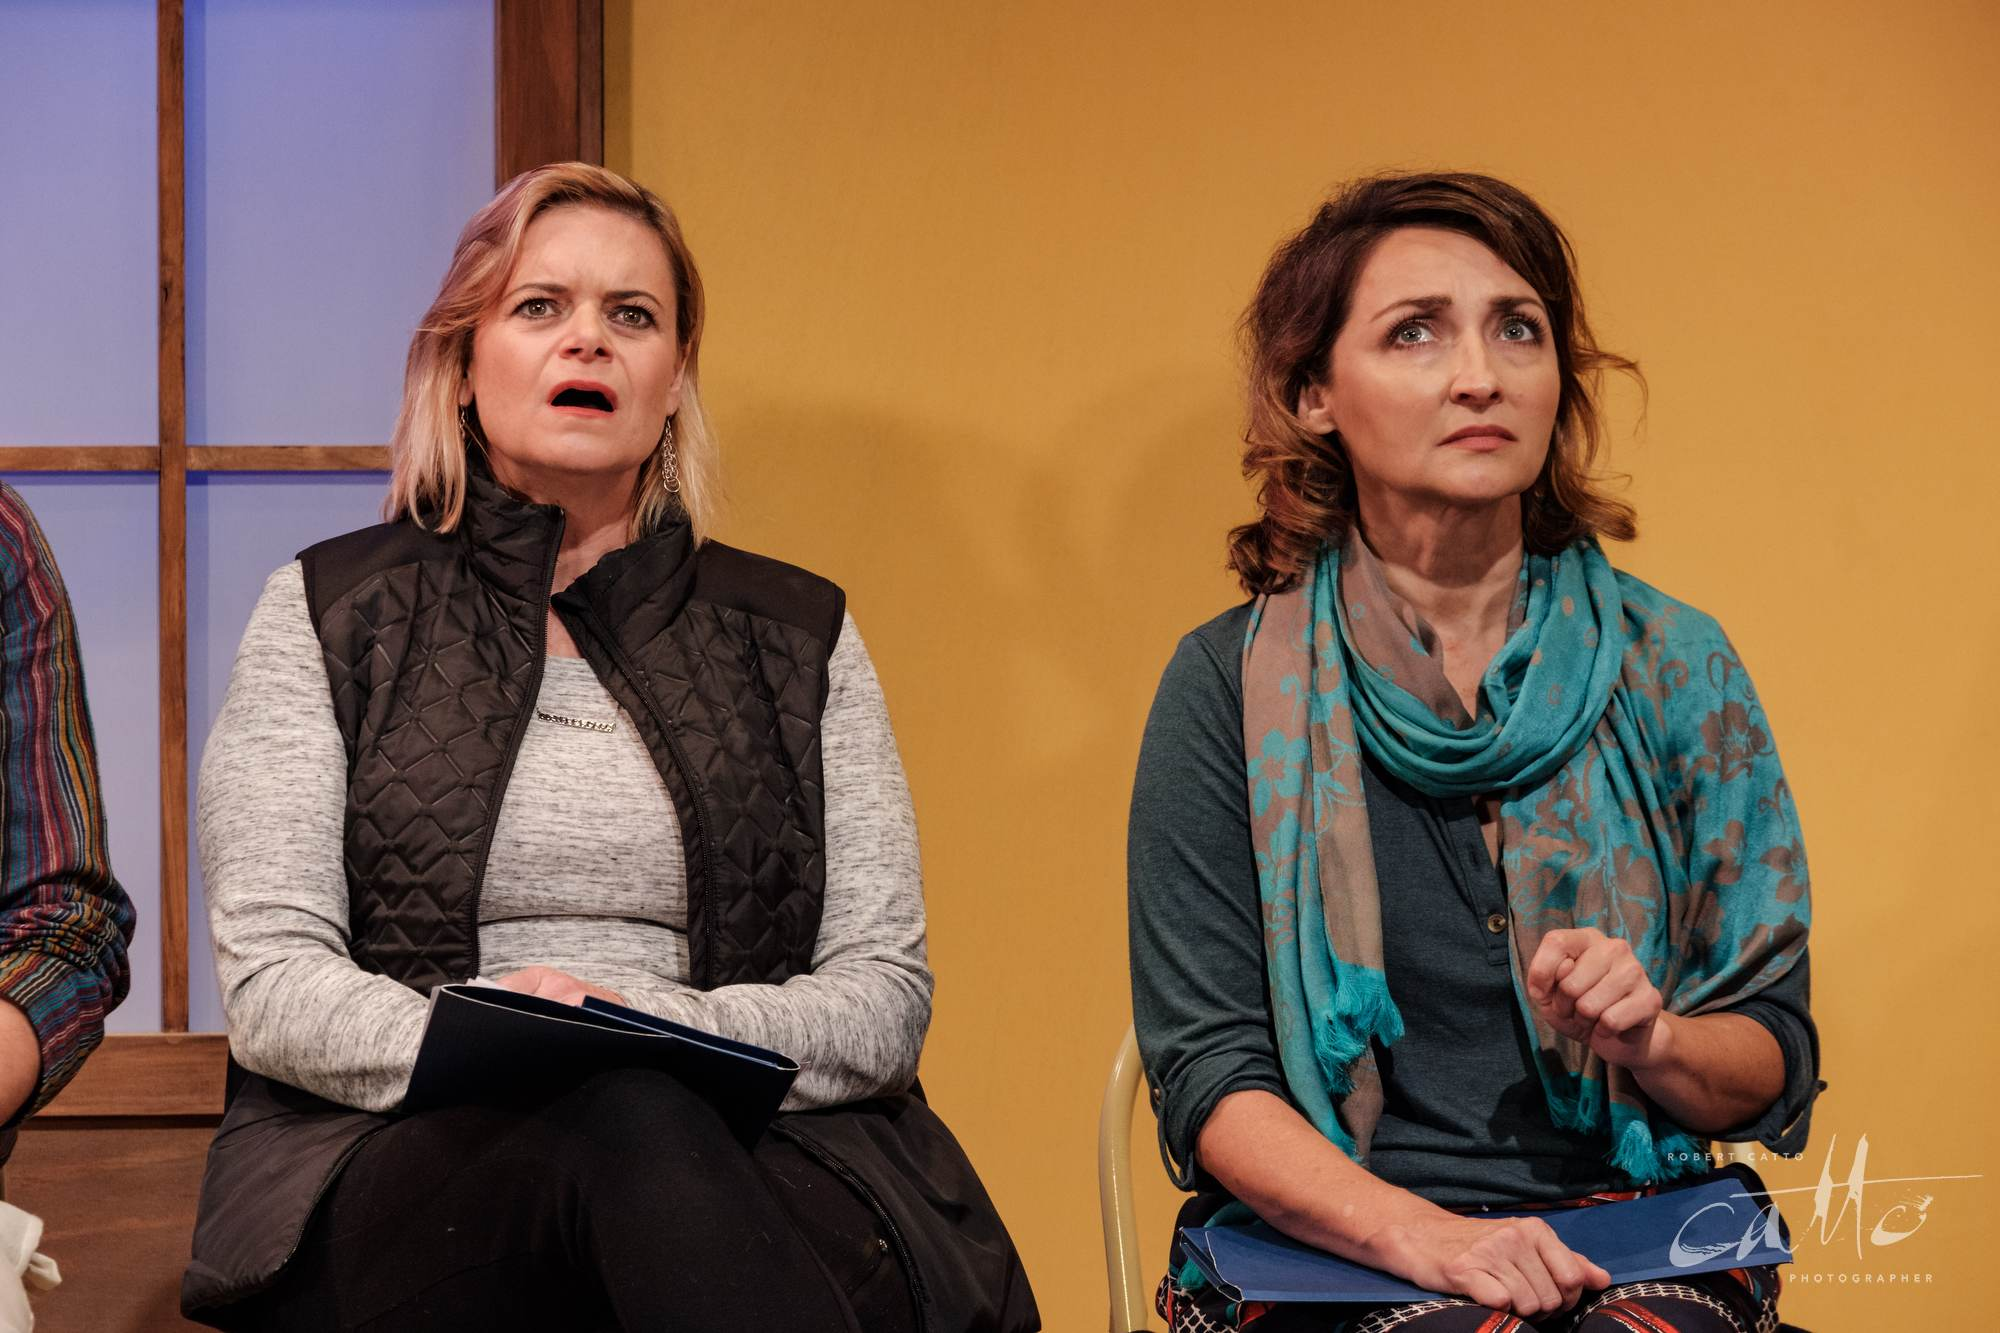 Darlinghurst Theatre Company presents Small Mouth Sounds by Bess Wohl